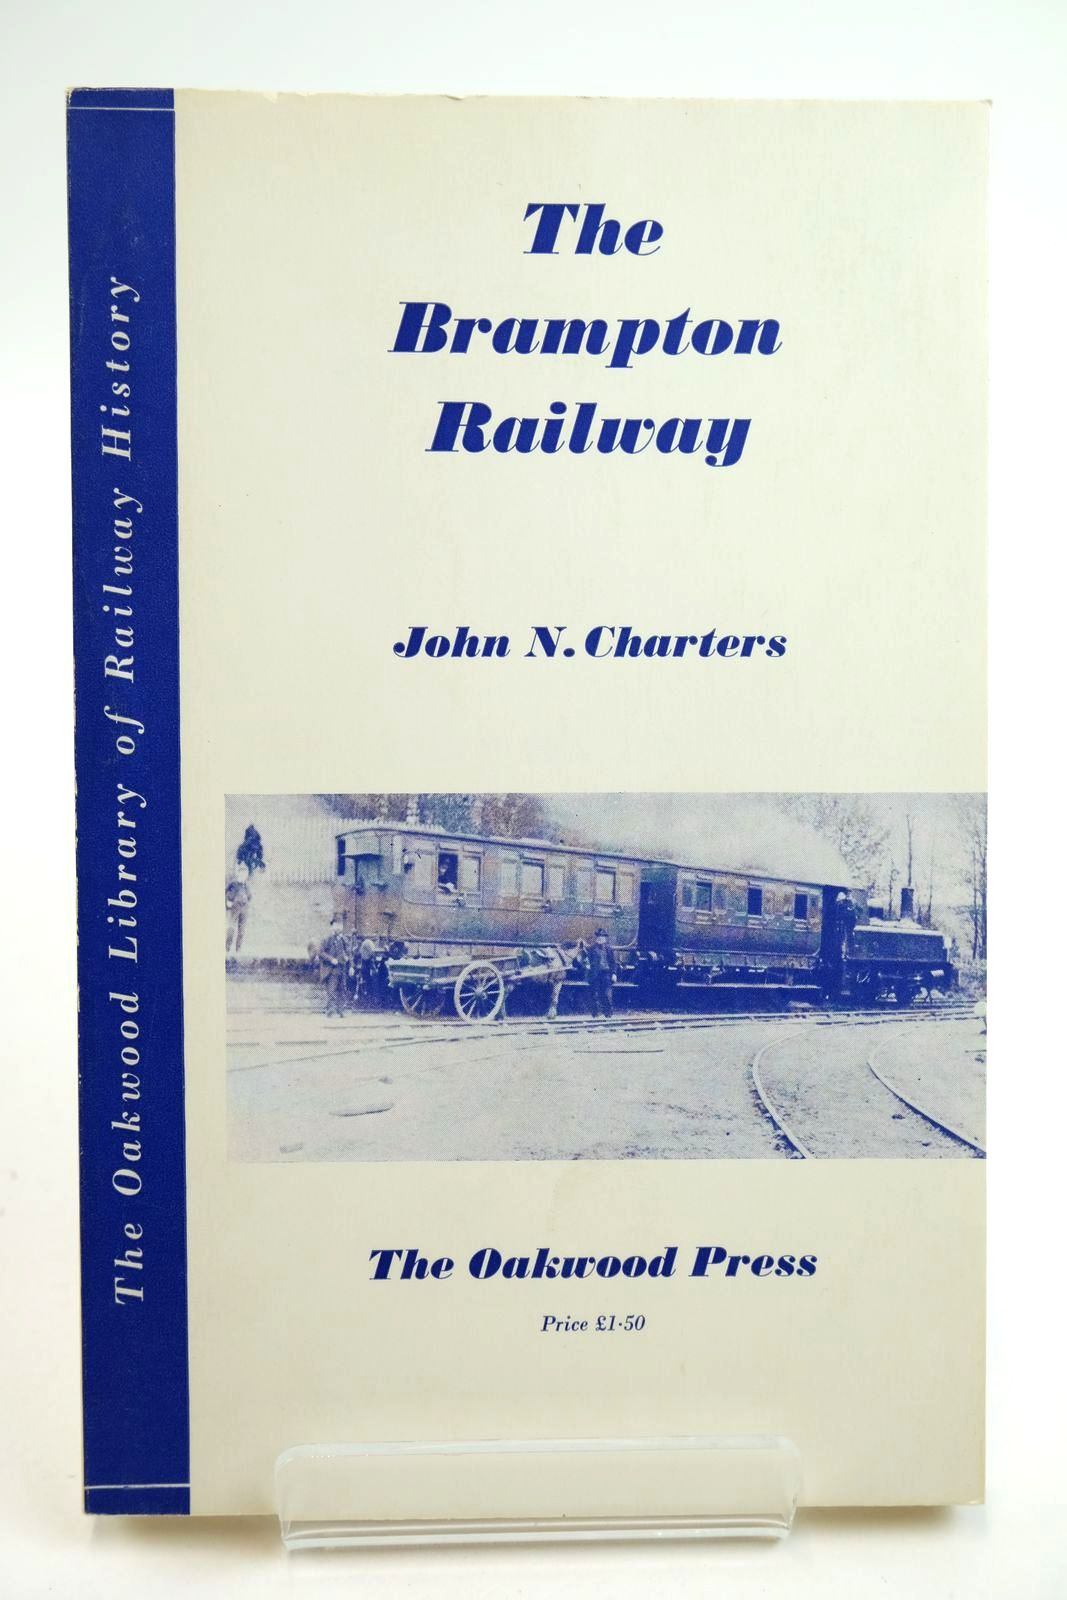 Photo of THE BRAMPTON RAILWAY 1798-1953 written by Charters, John N. published by The Oakwood Press (STOCK CODE: 2133134)  for sale by Stella & Rose's Books